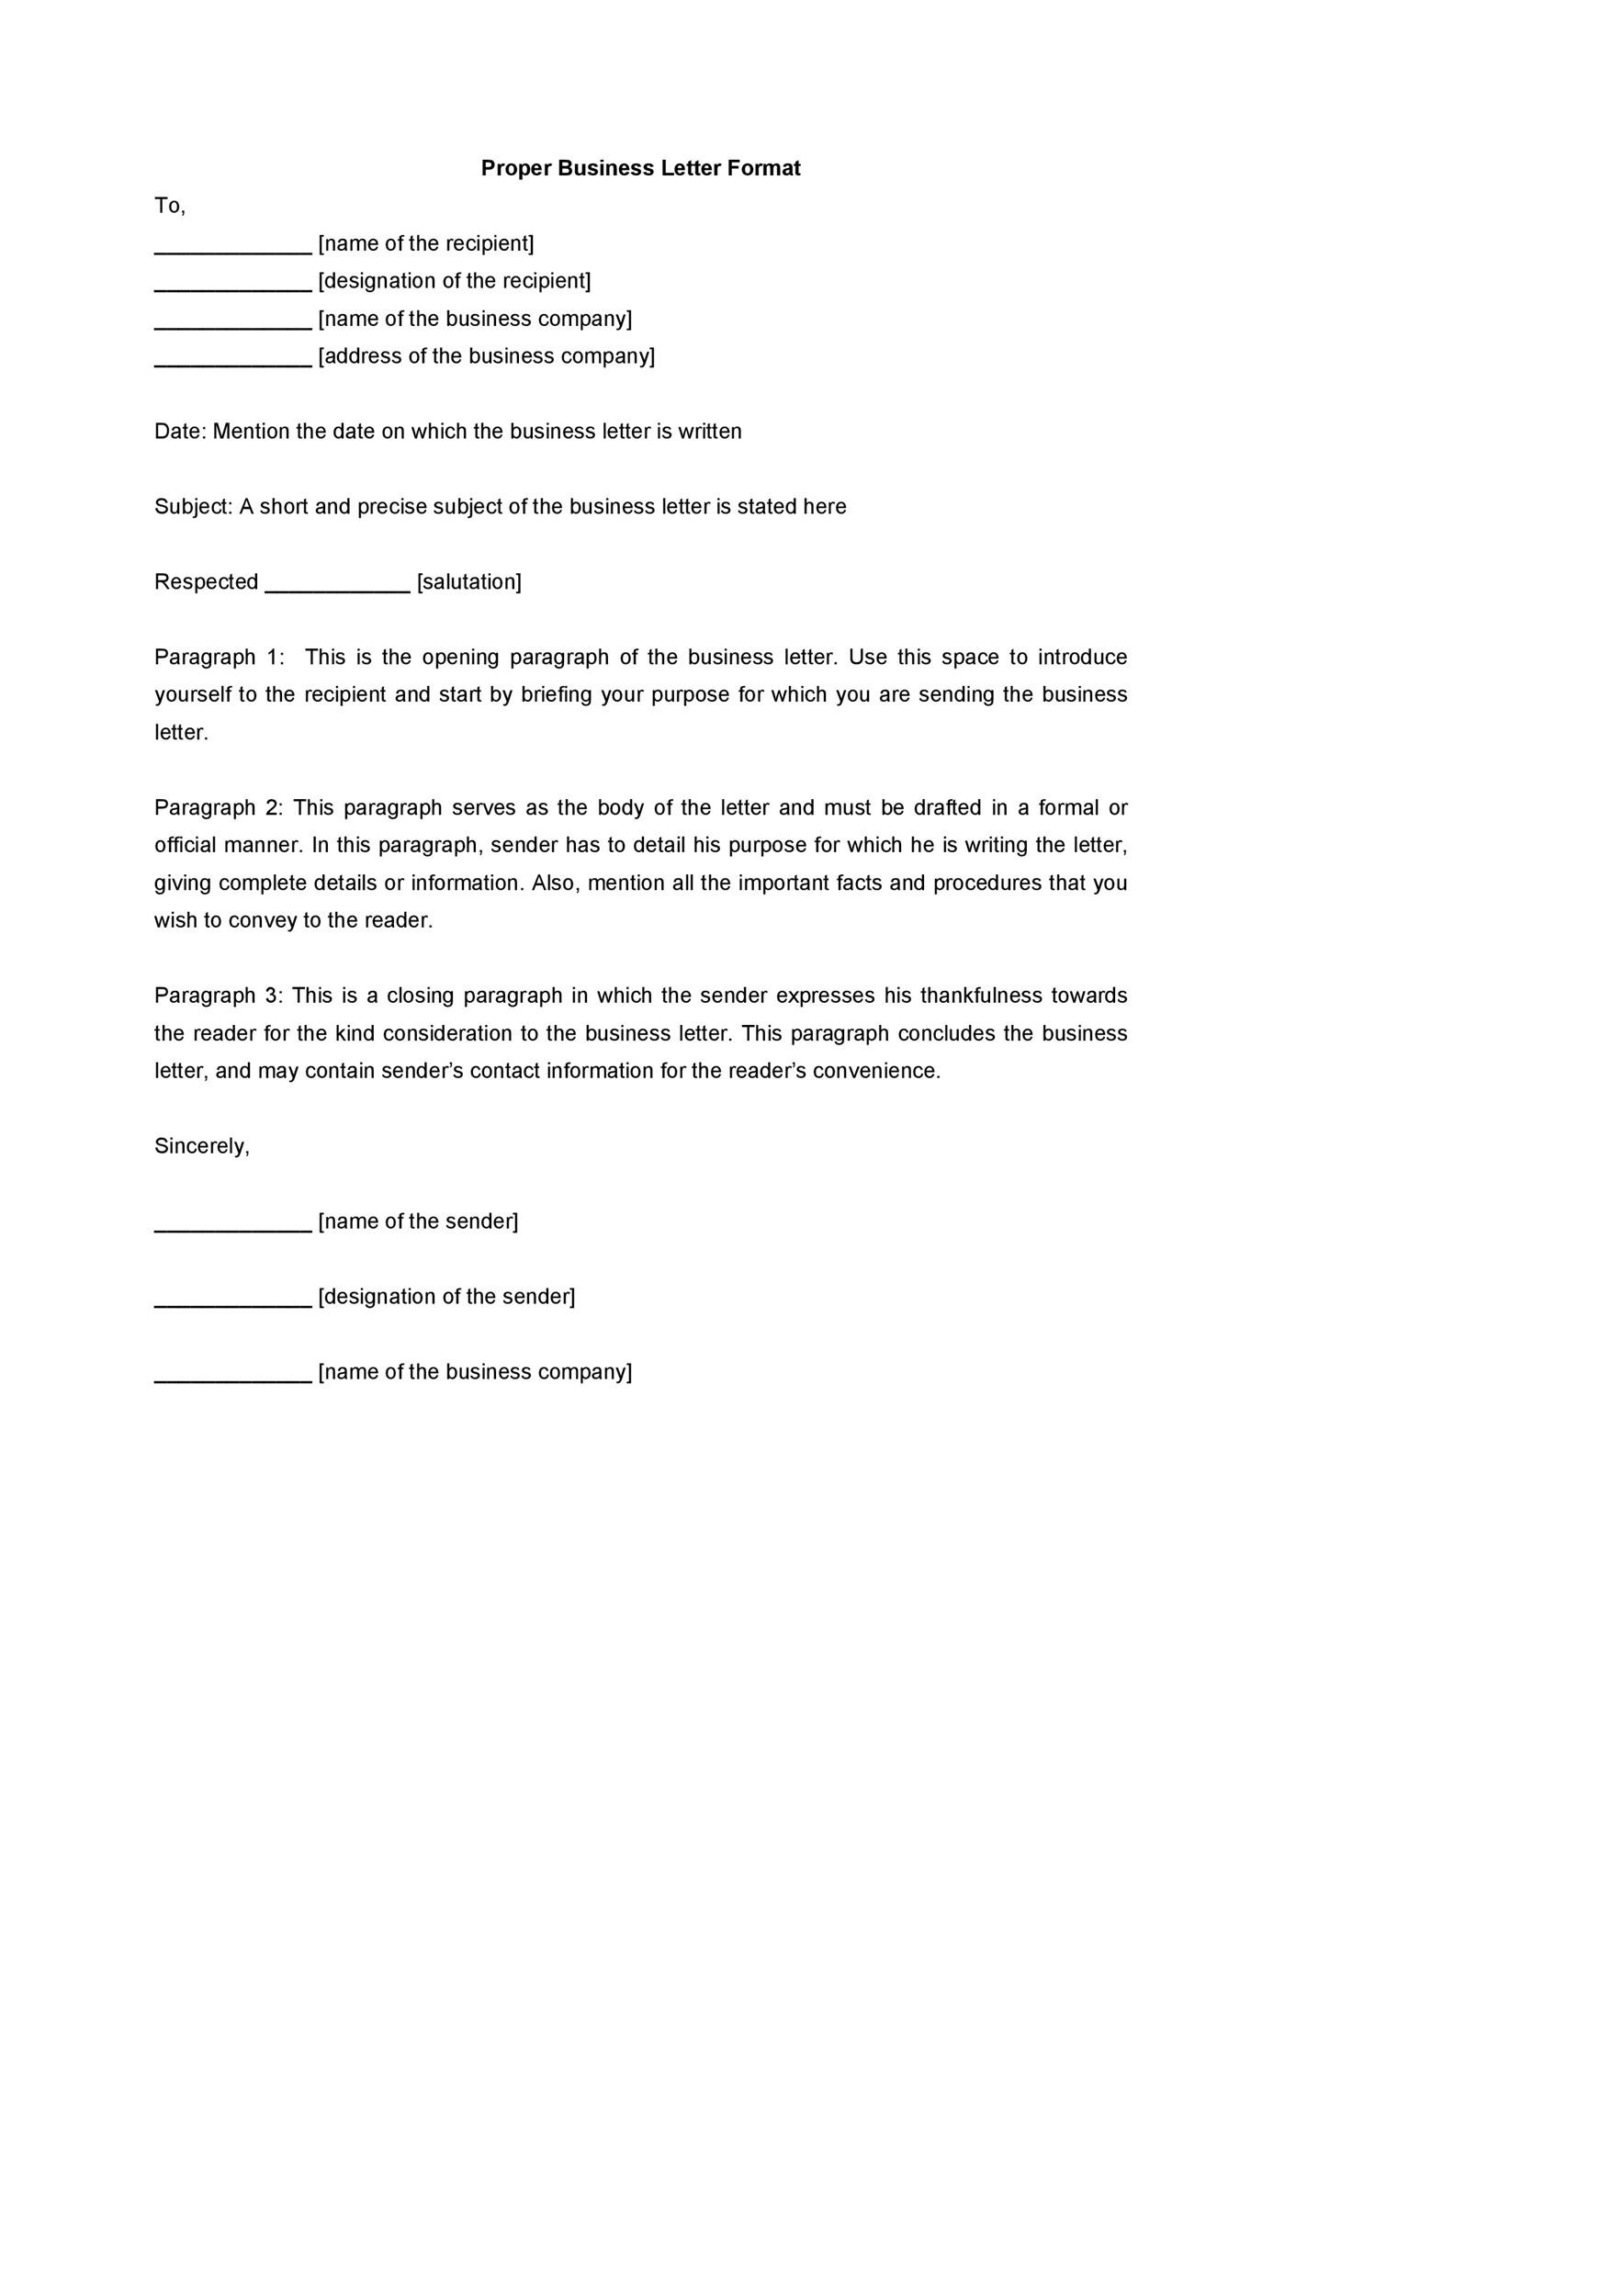 ideas collection printable sample proper business letter format form